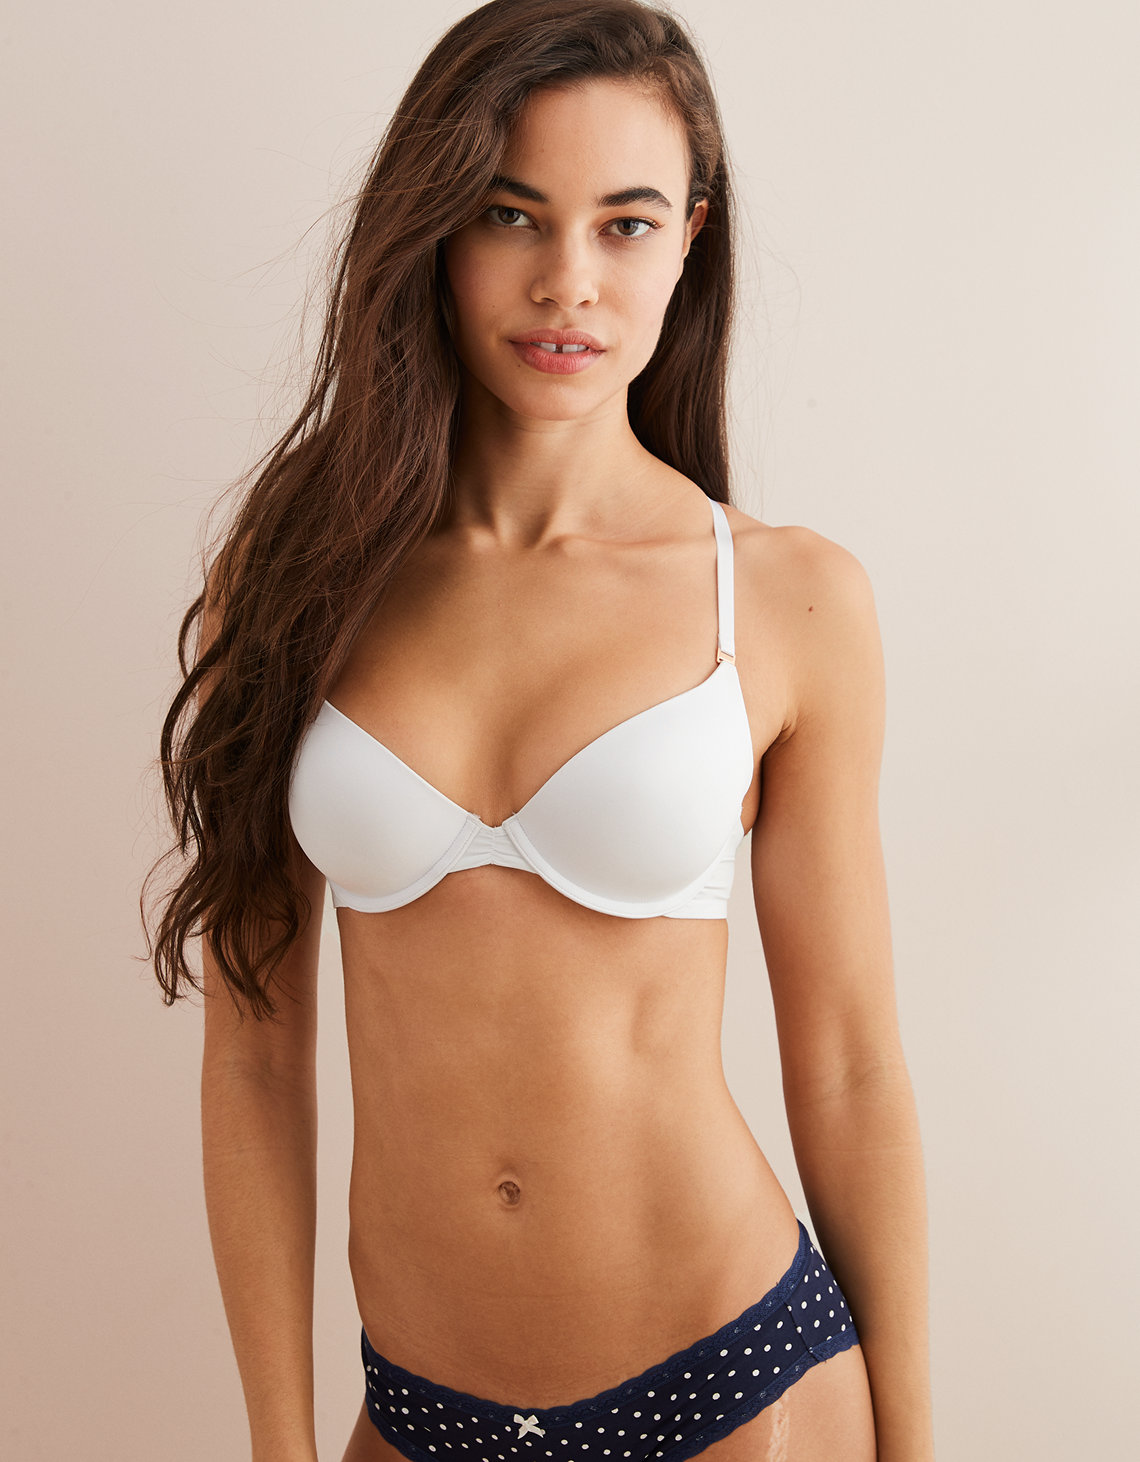 b83877d3b4f36 Aerie Real Power Convertible Plunge Push Up Bra. Placeholder image. Product  Image